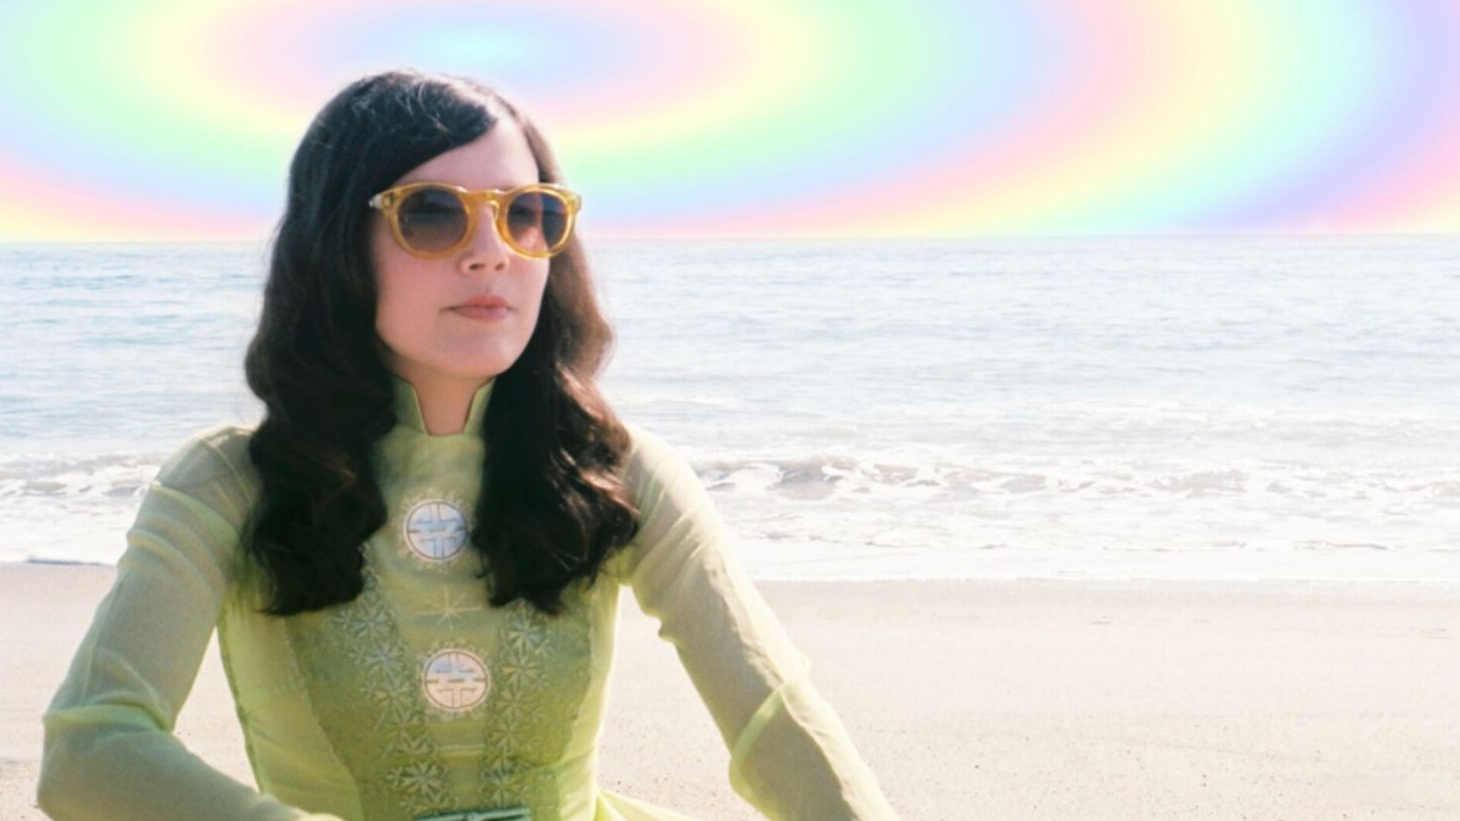 After years as Jenny Lewis' back-up singer and keyboardist, Tristen is back with her third album.